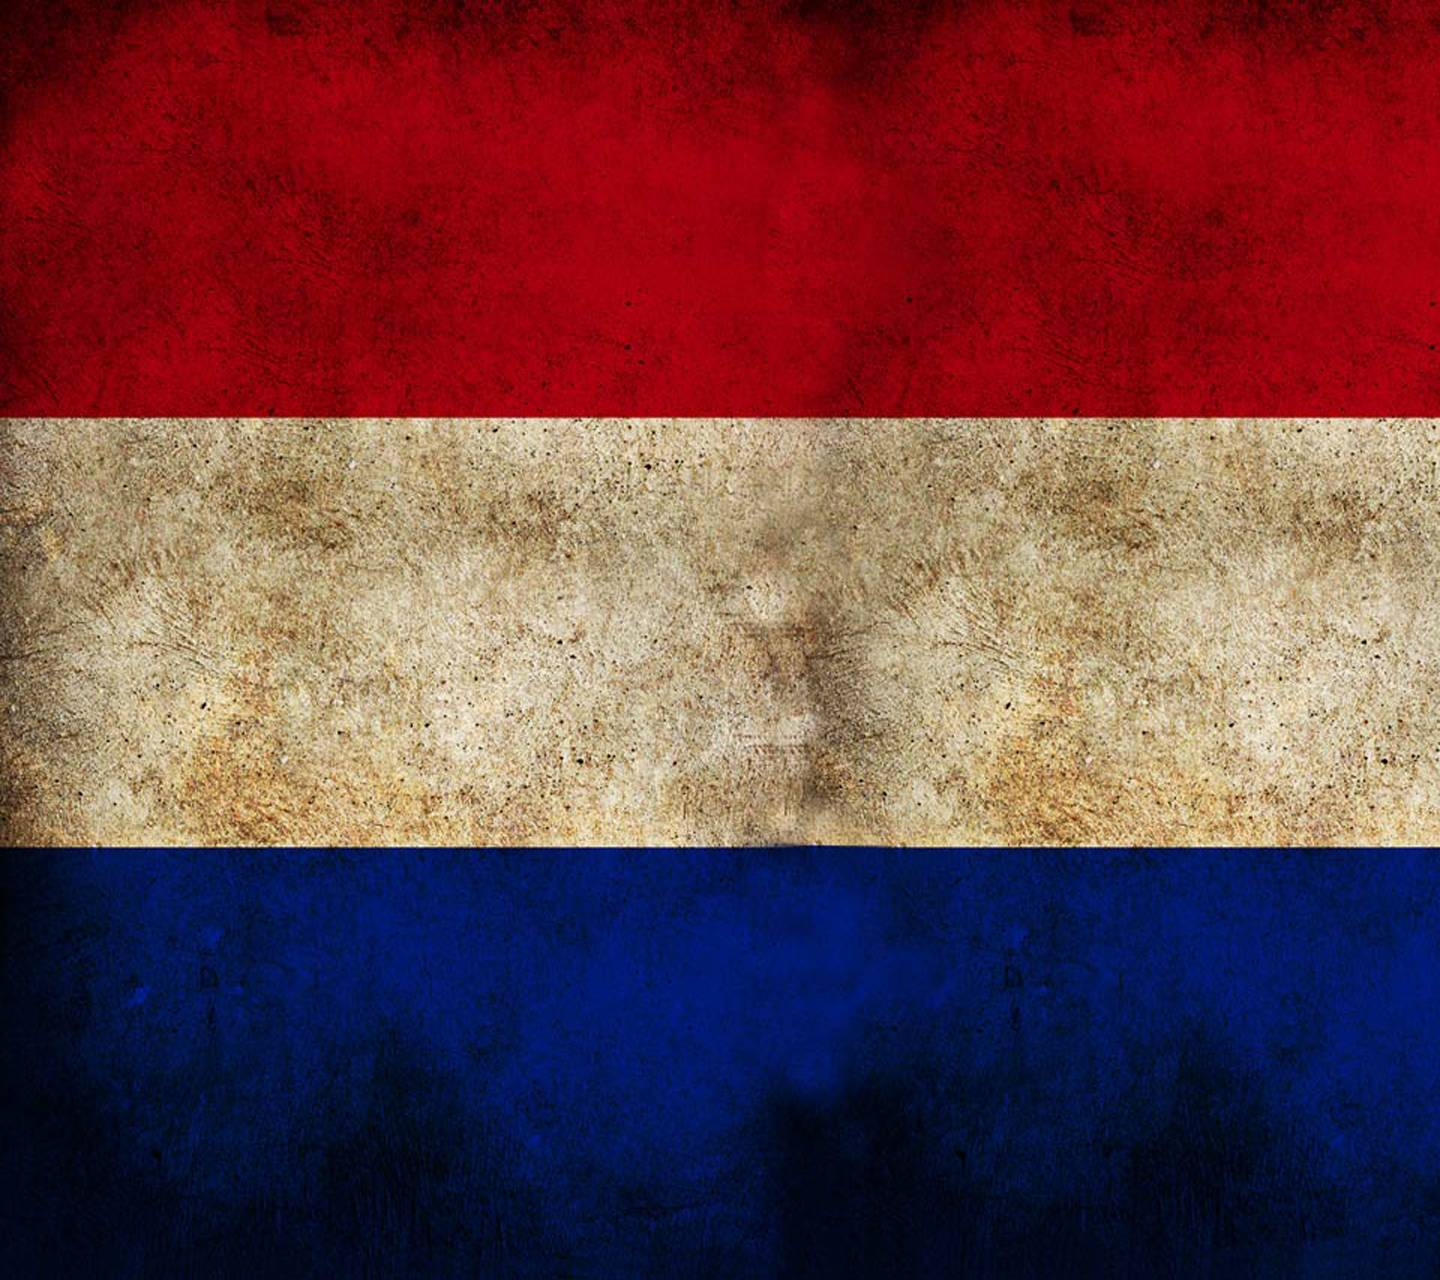 1440x1280 Dutch Flag wallpaper by Mrs_Policeman - 29 - Free on ZEDGE™